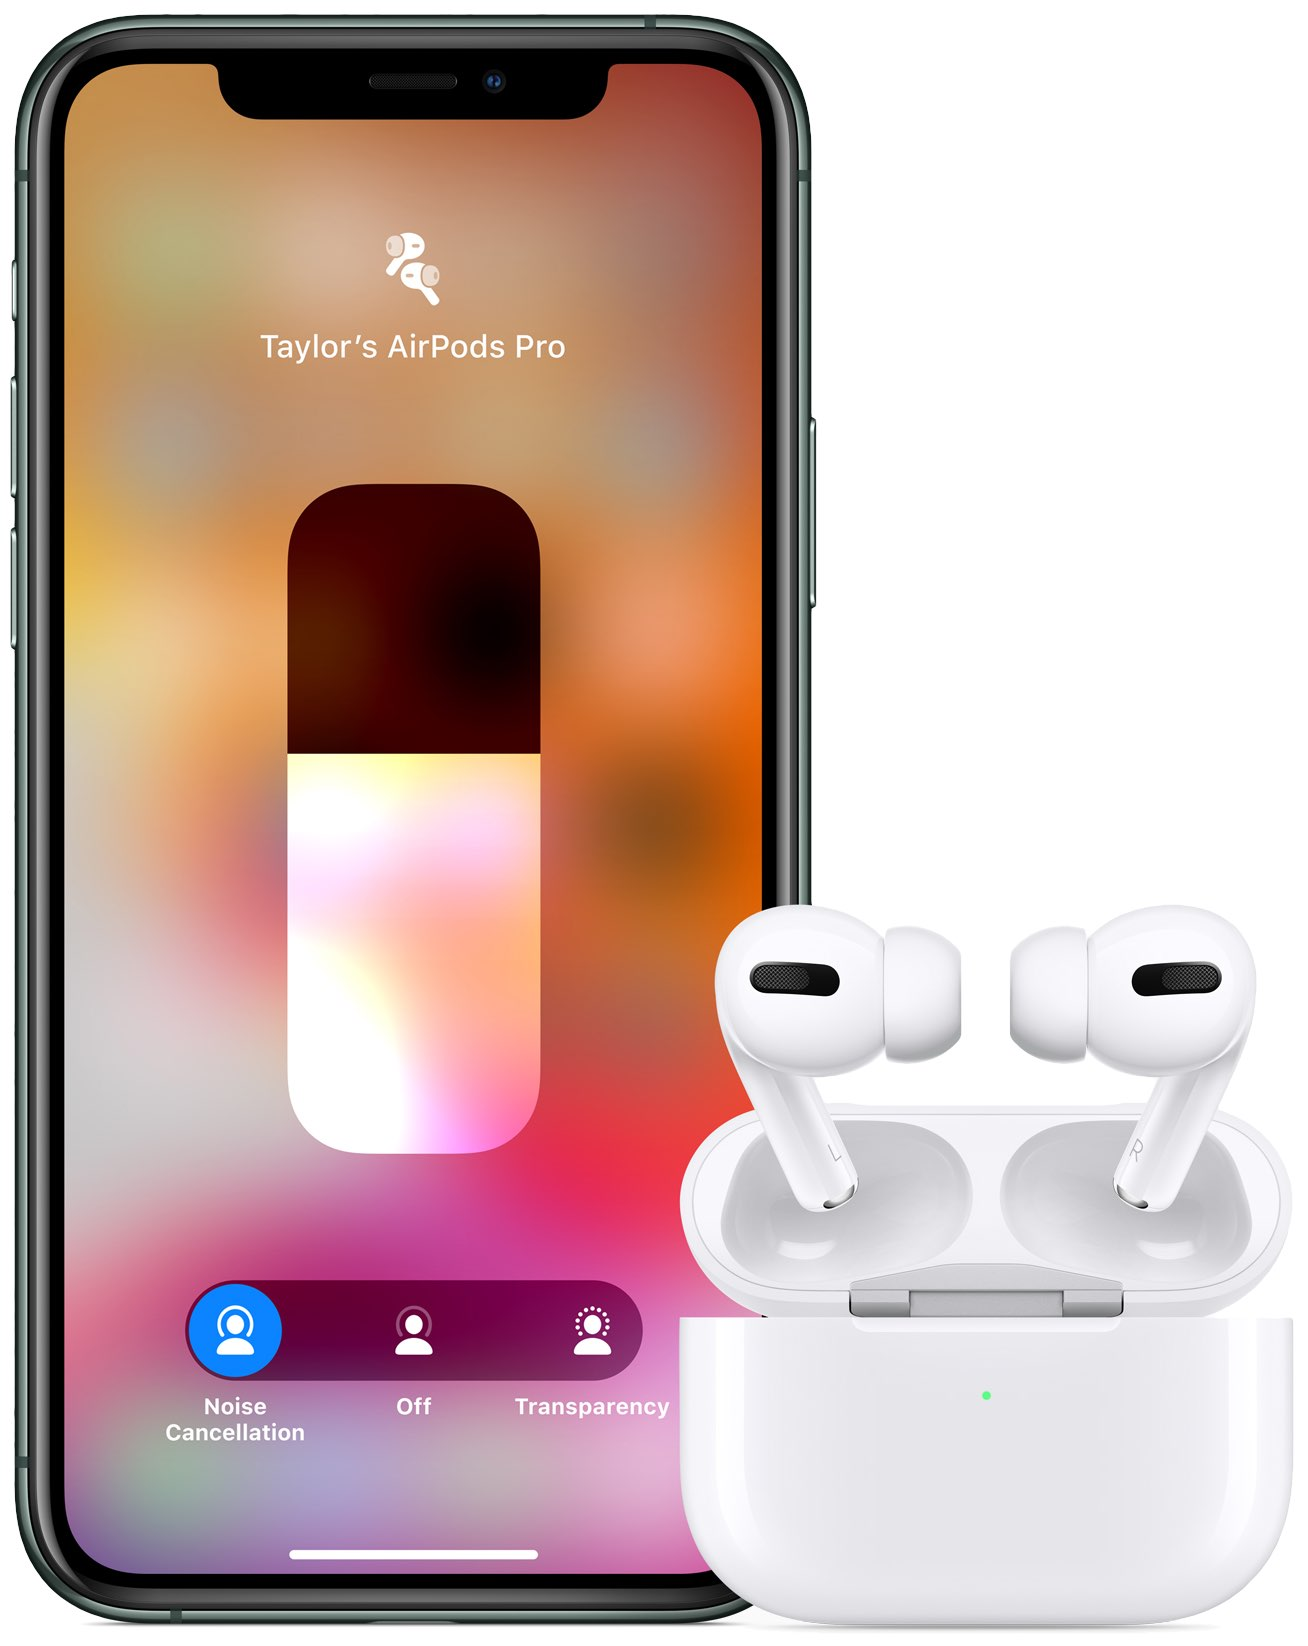 AirPods Pro controls